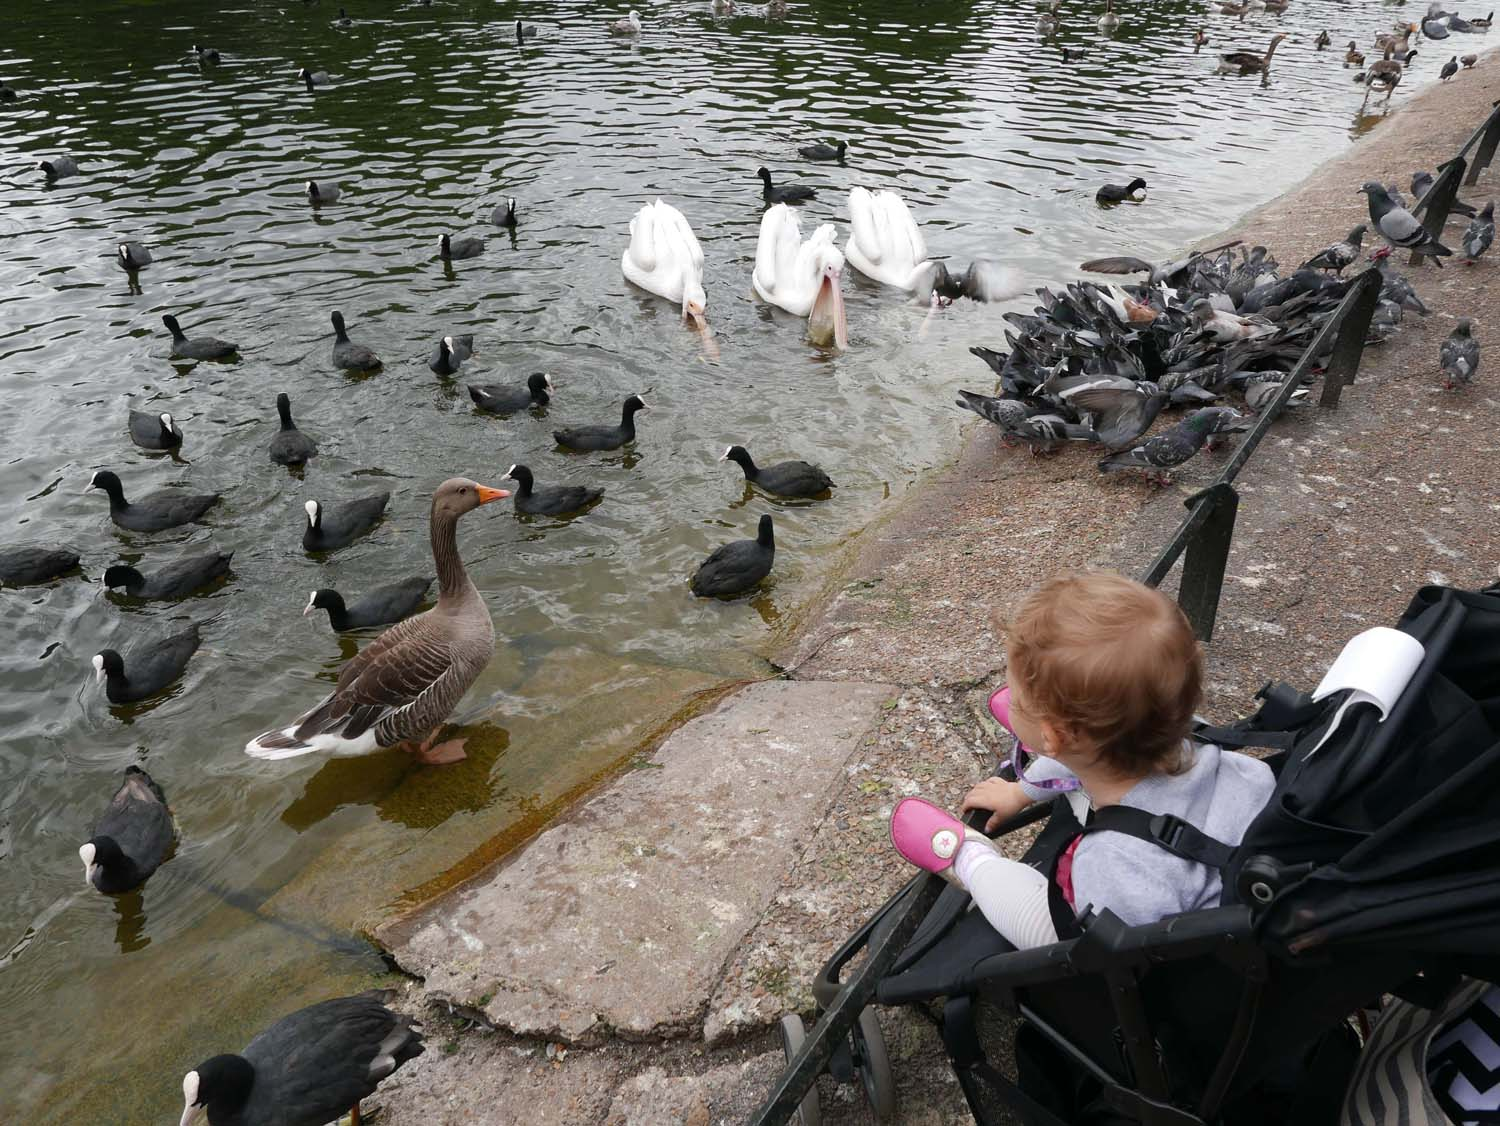 some of the water fowl of St. James Park